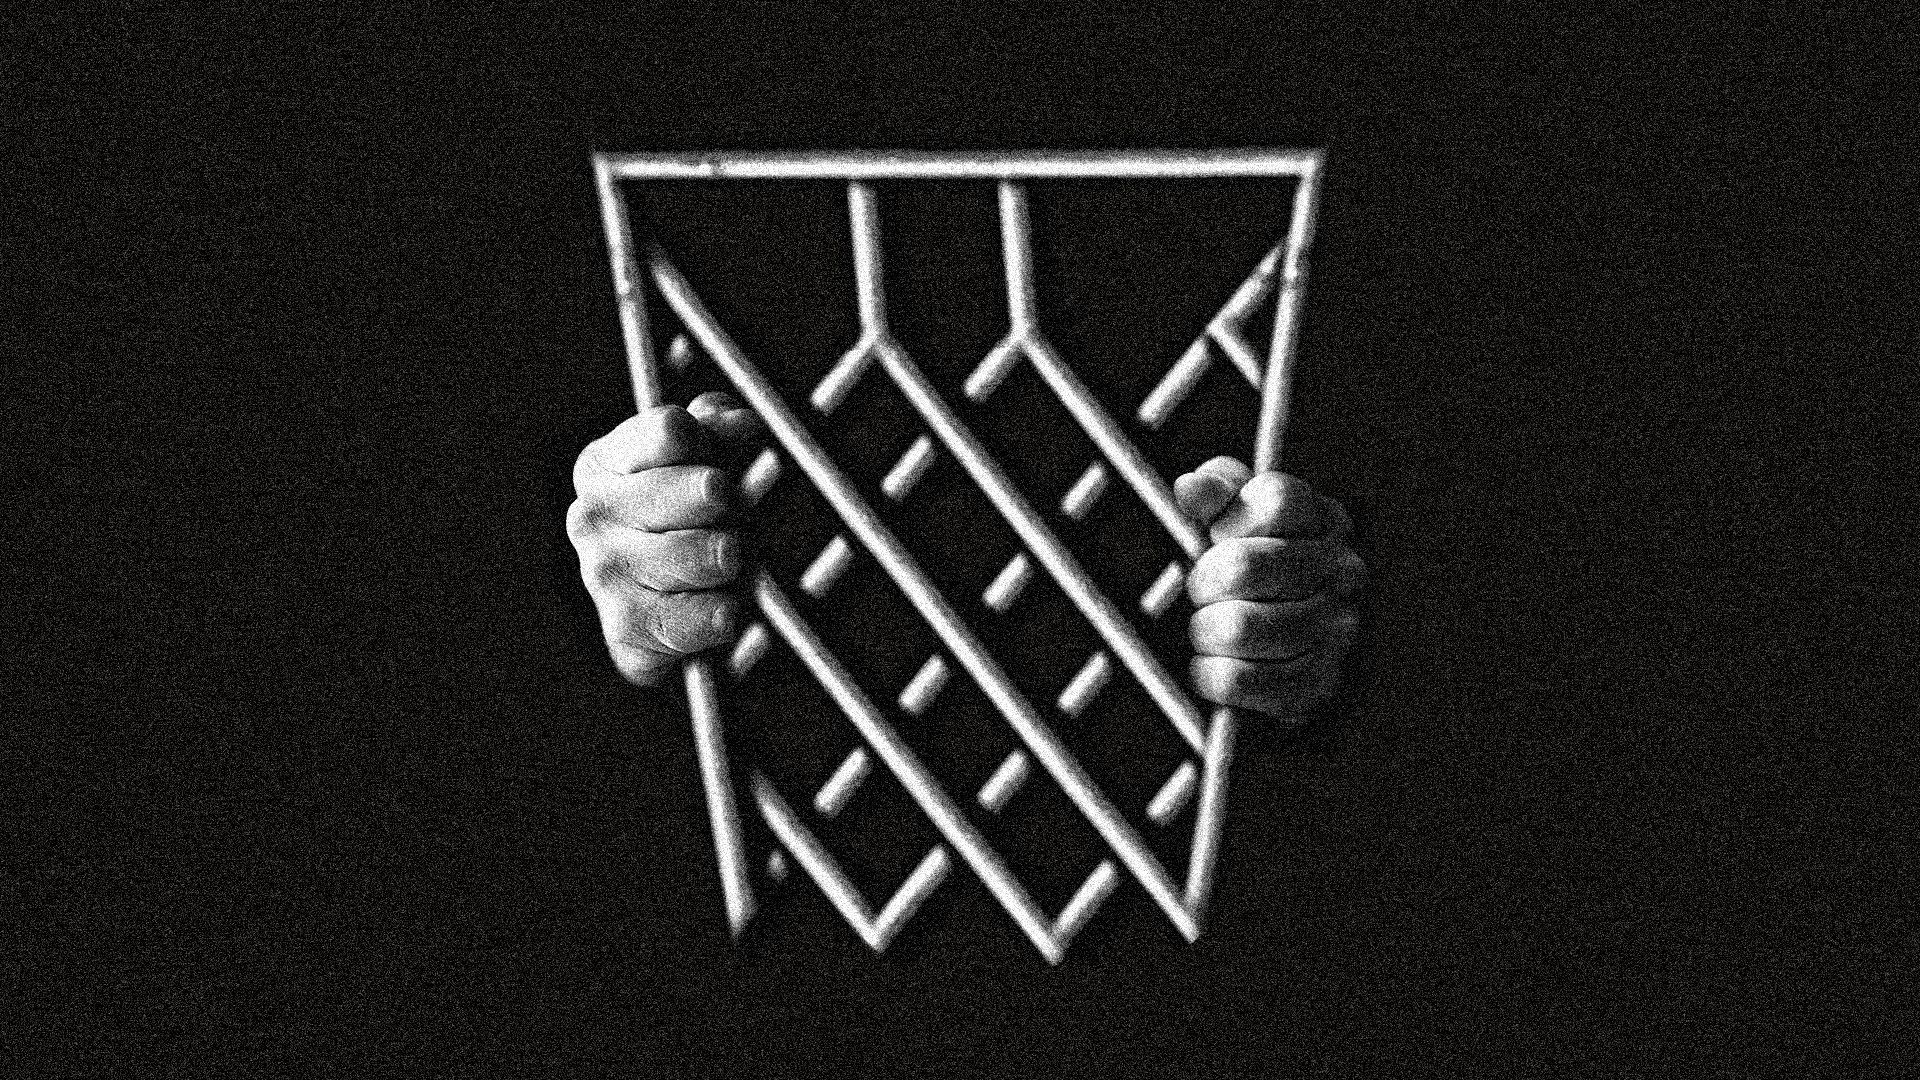 This illustration shows a metal basketball hoop being held like jail bars by two hands.